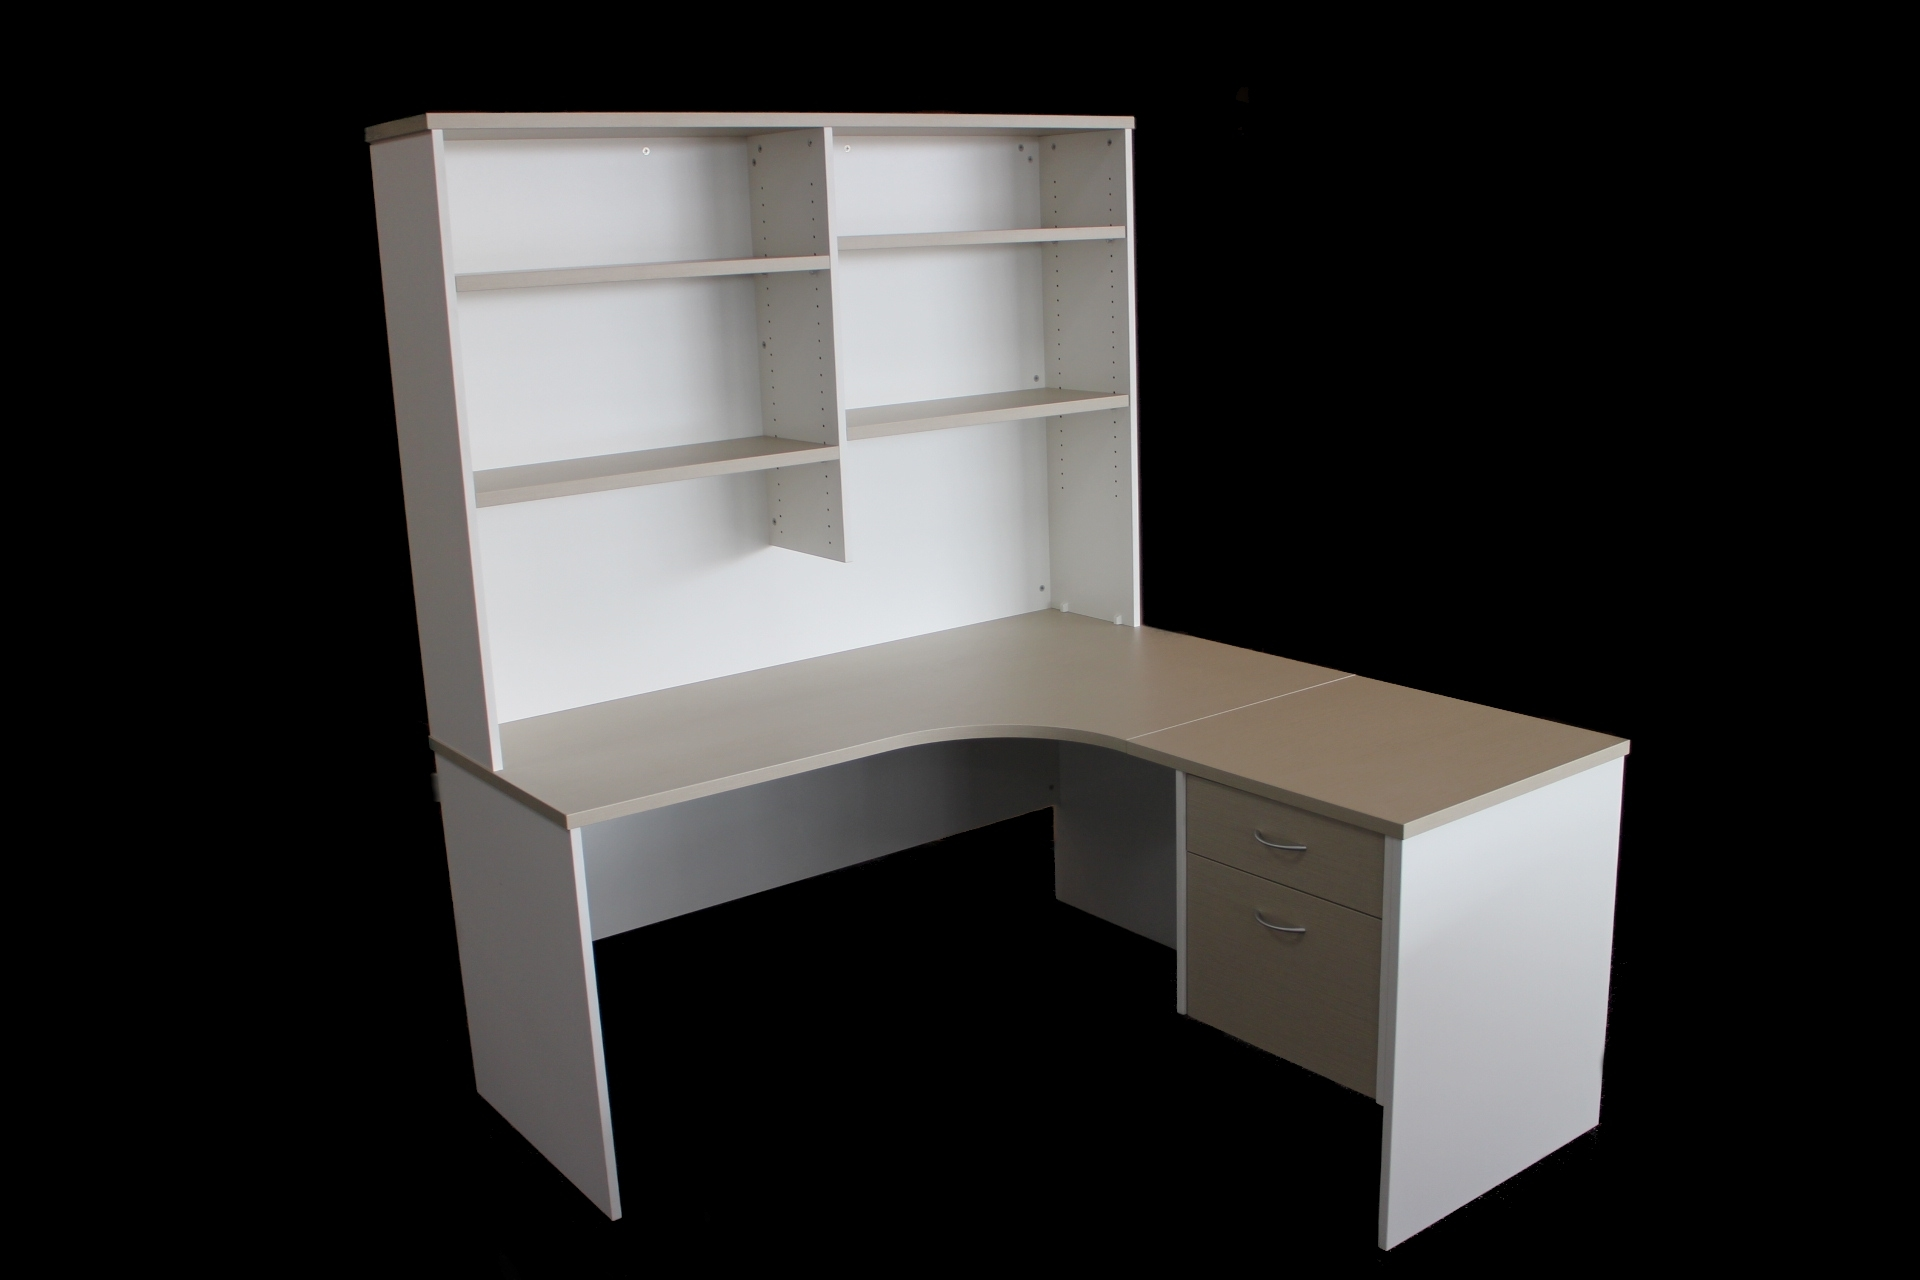 Oyster Linea and White radial workstation with adjustable shelf hutch